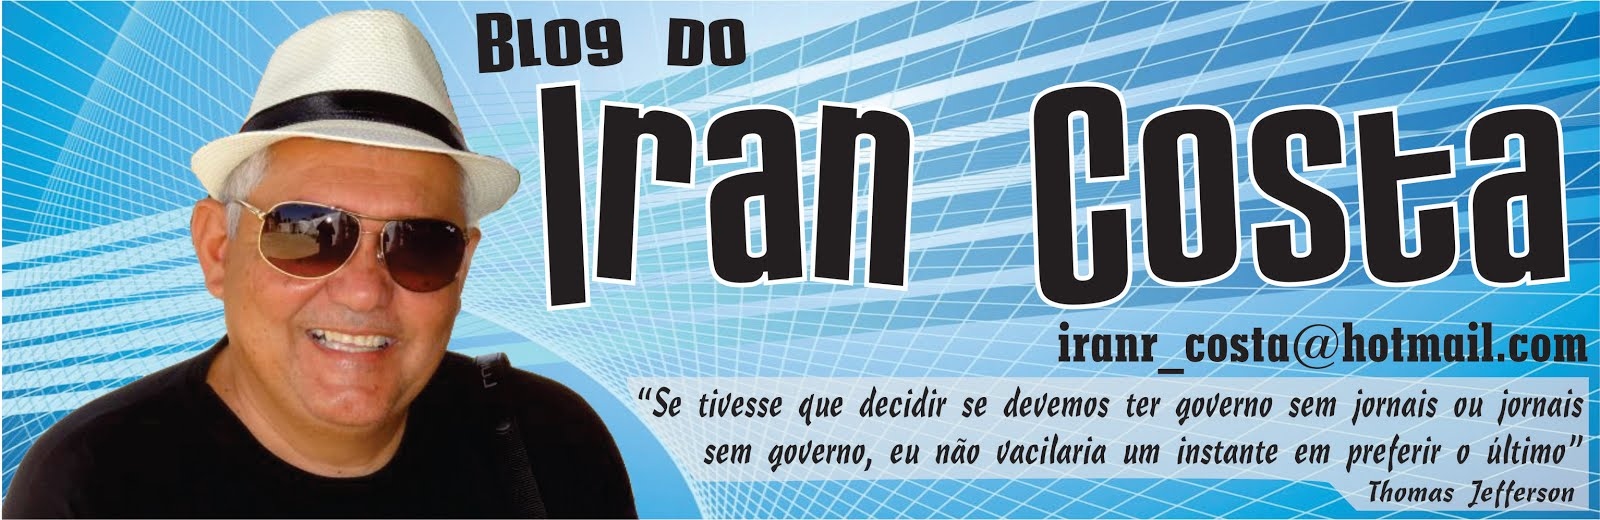 Blog do Iran Costa